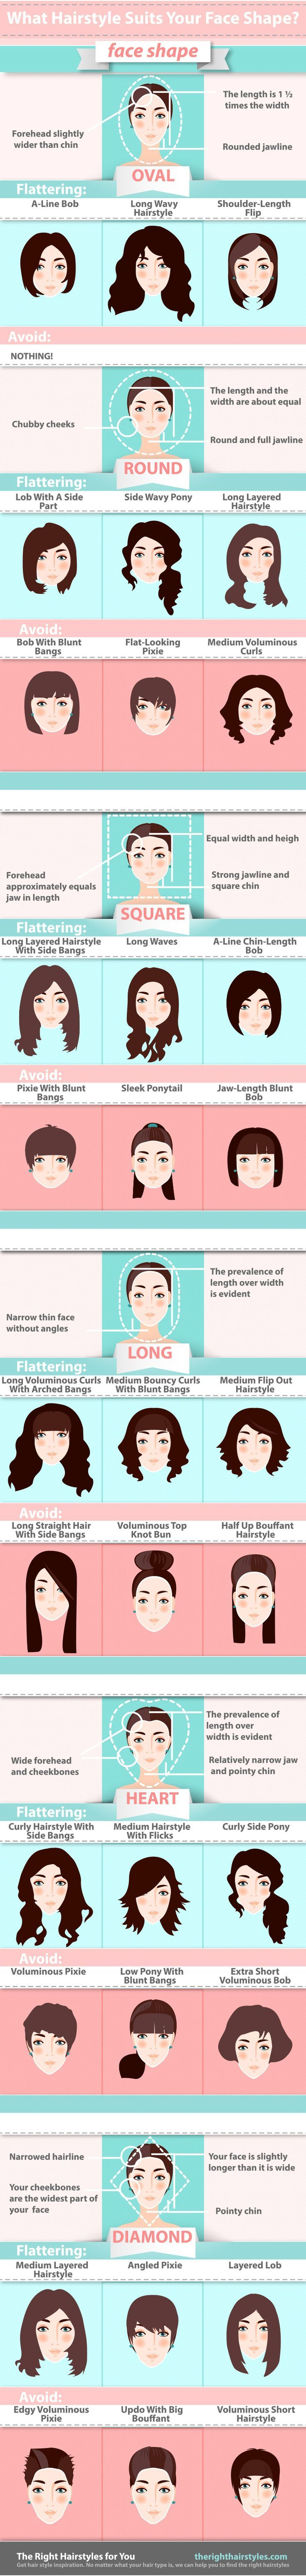 What Hairstyle Suits Your Face Shape #hair